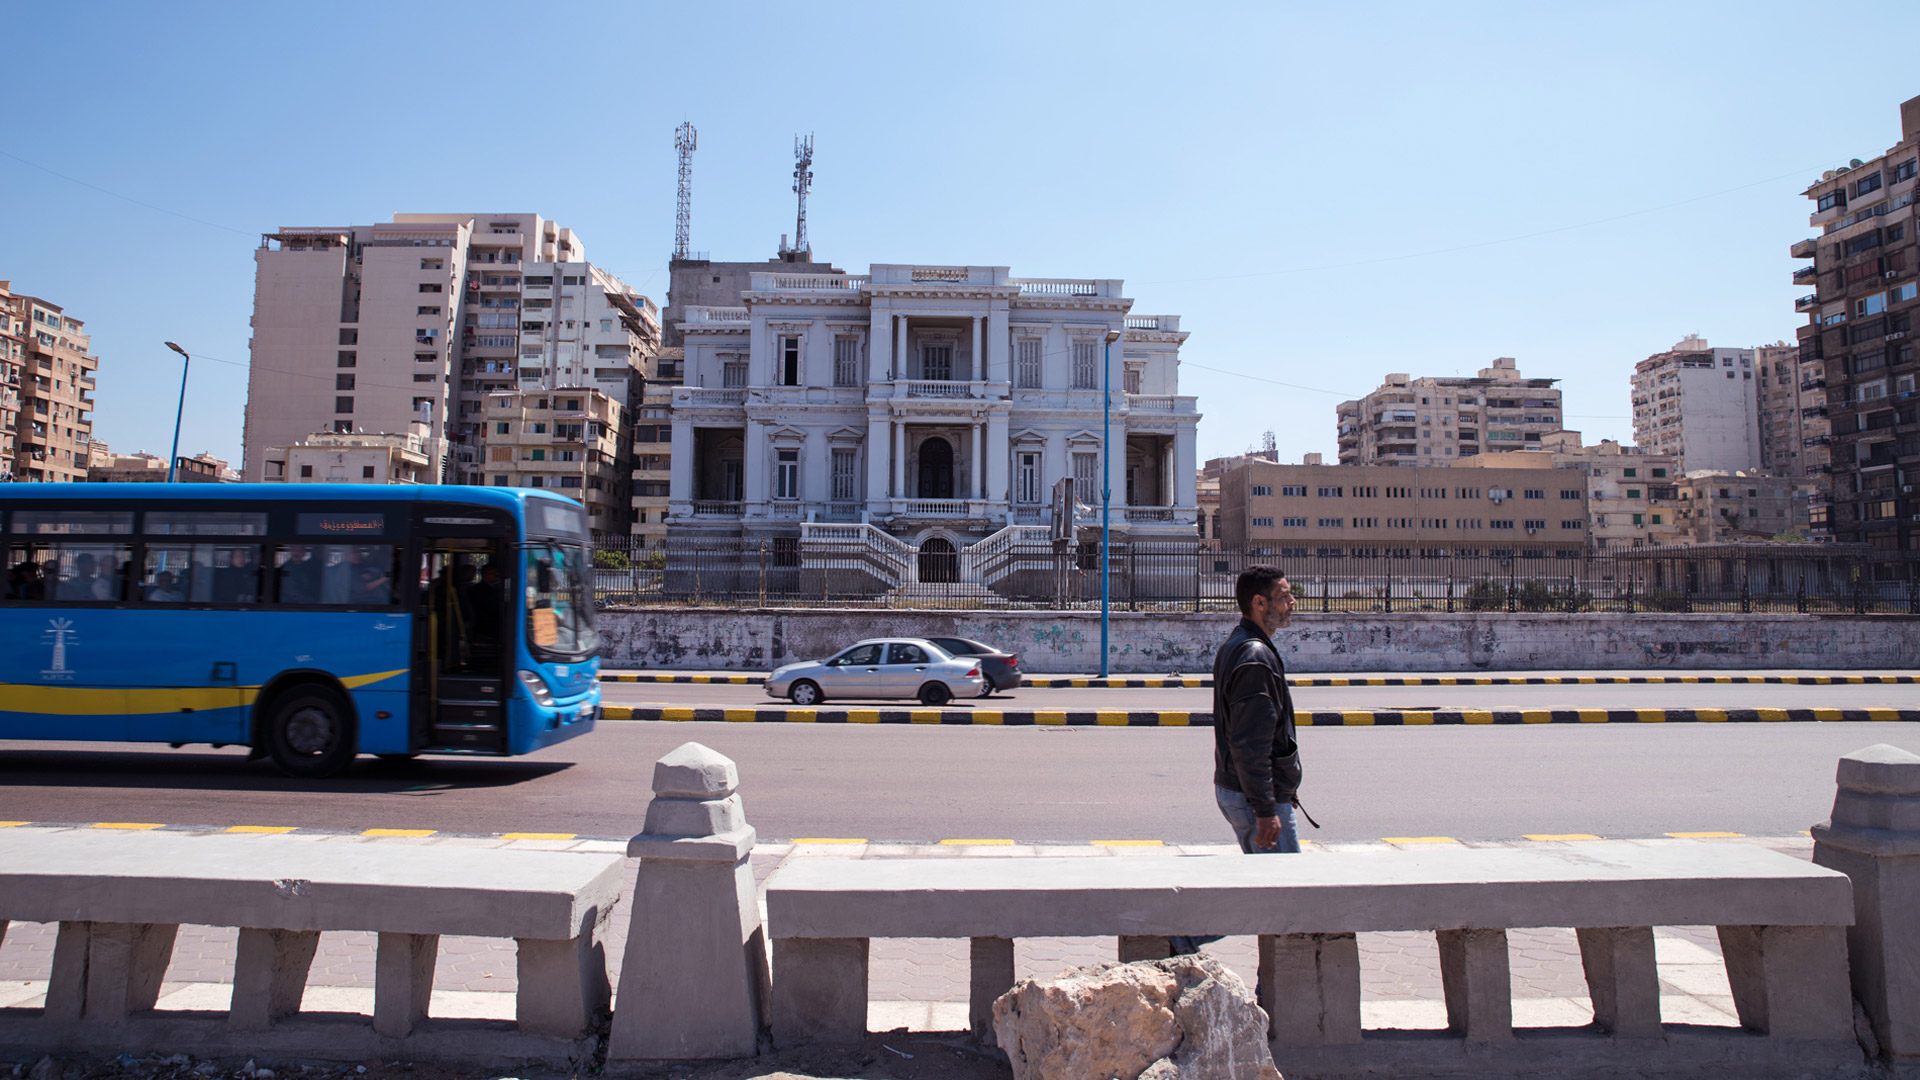 Much of Alexandria's architectural heritage has been destroyed, blamed on corruption and shadowy business deals.